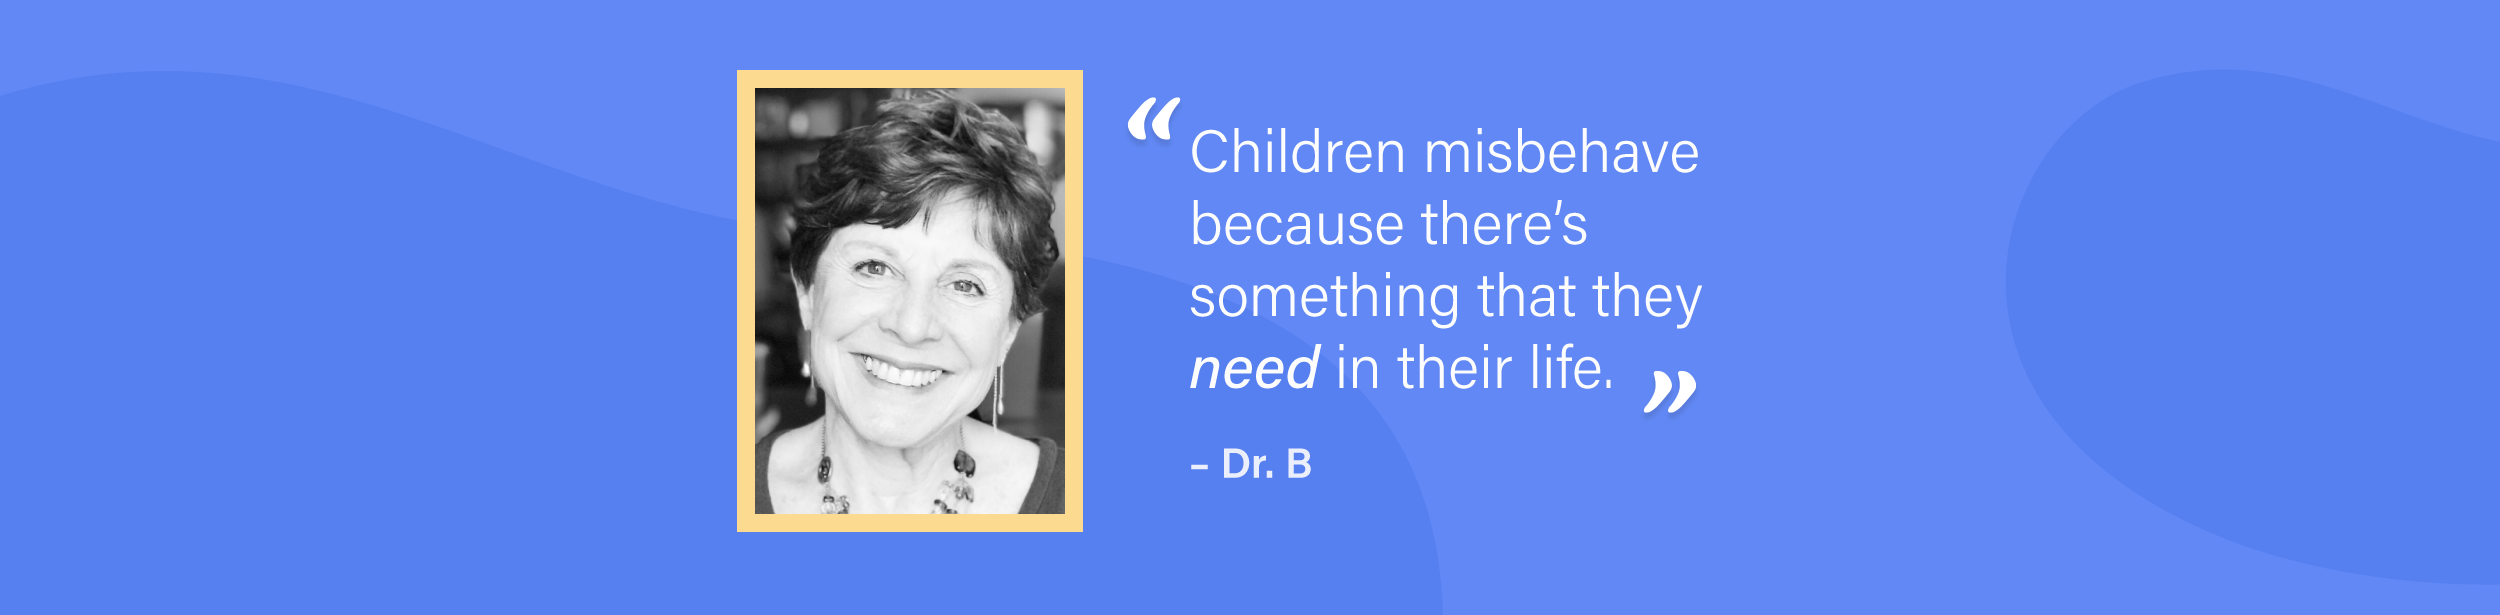 parentwhys-hero-drbs-quote.png